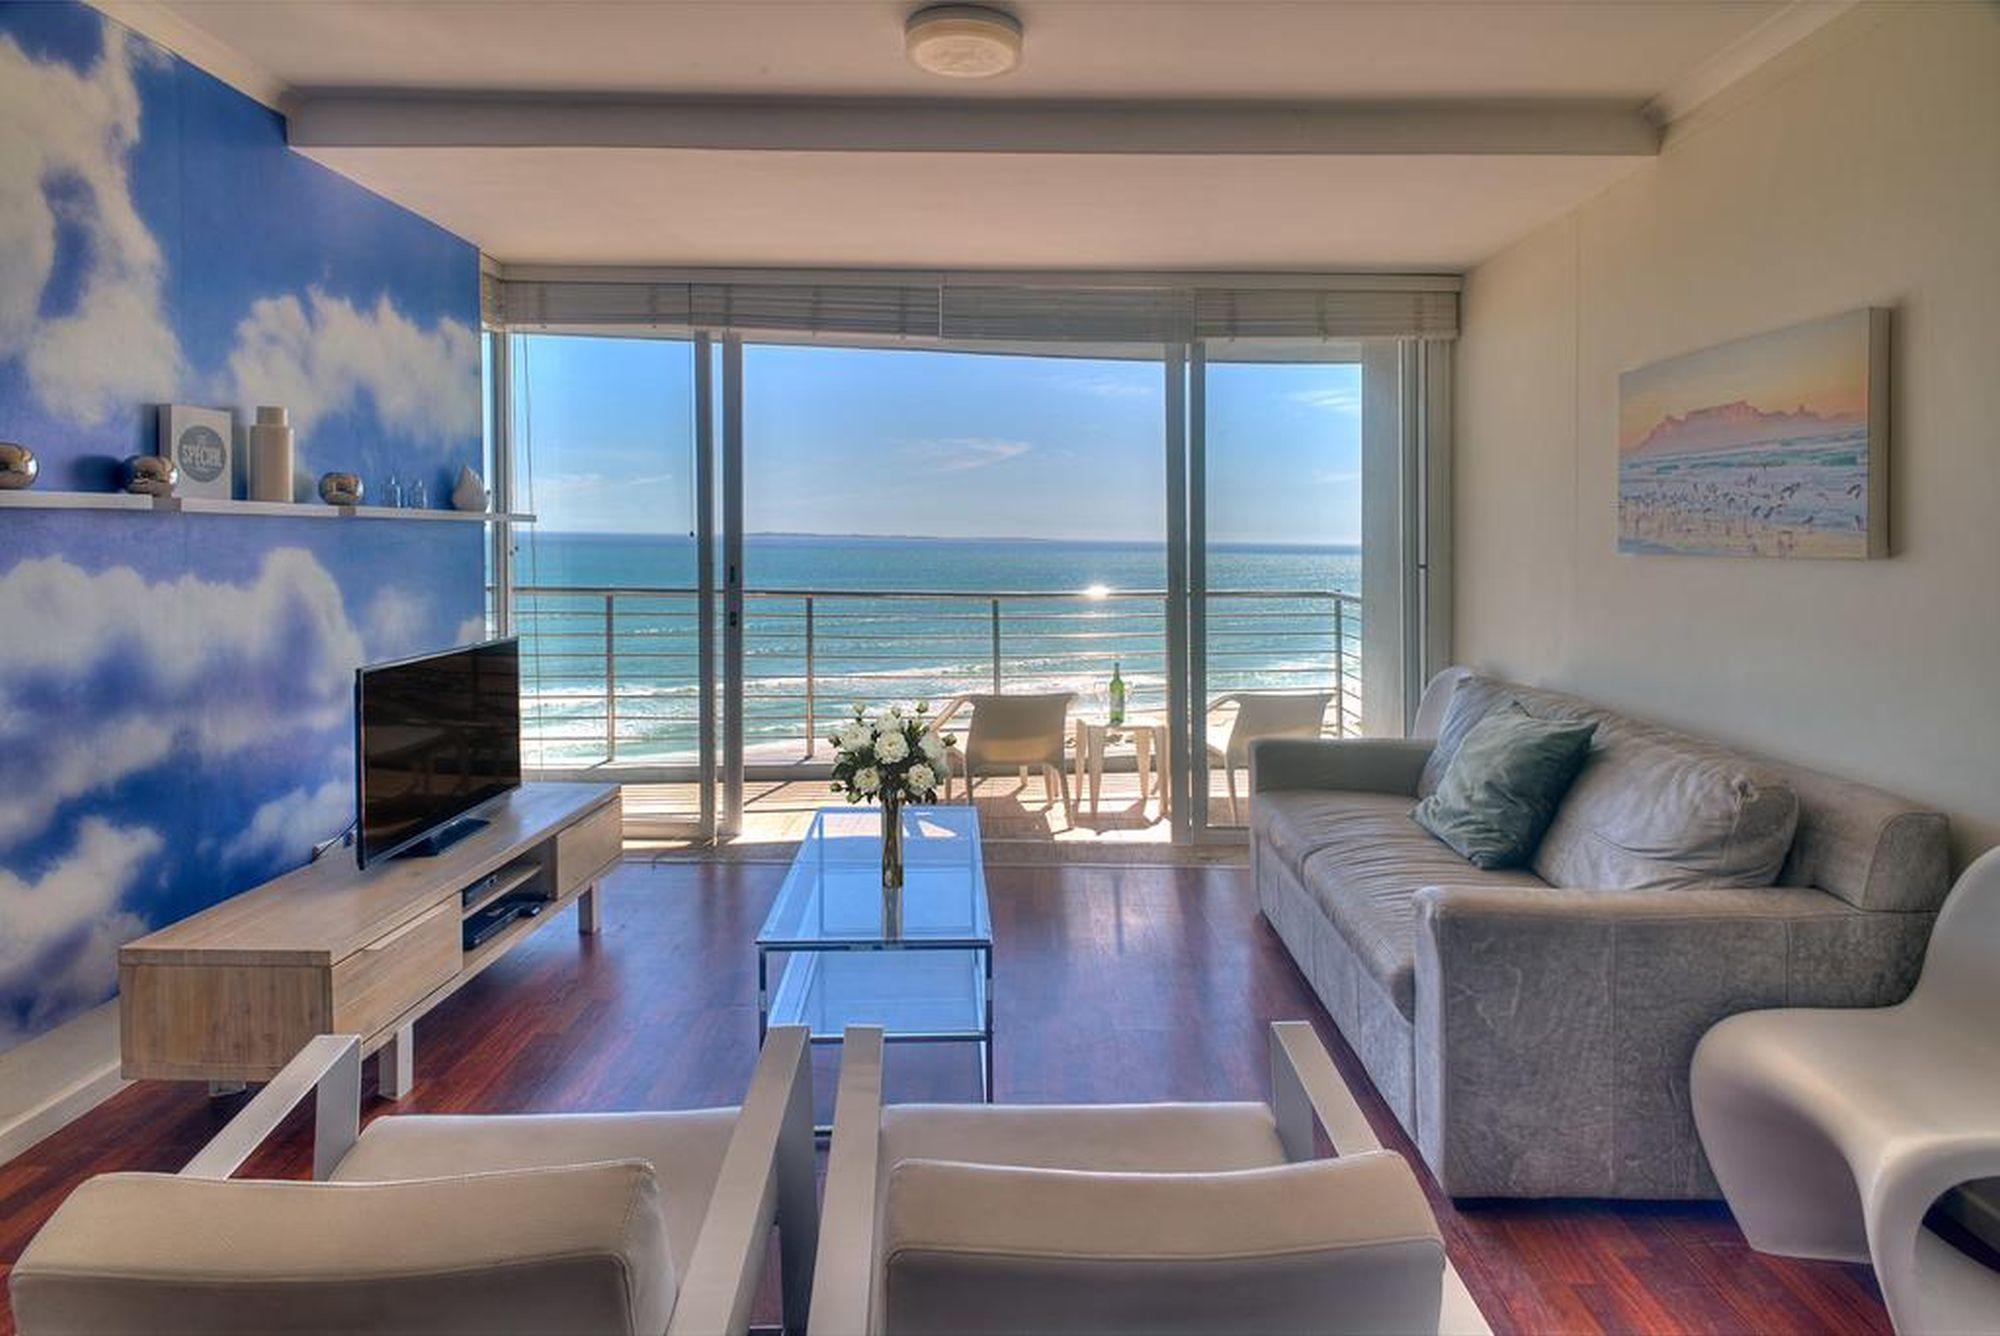 Horizon Bay 702 is a stunning three-bedroom holiday apartment in Blouberg.